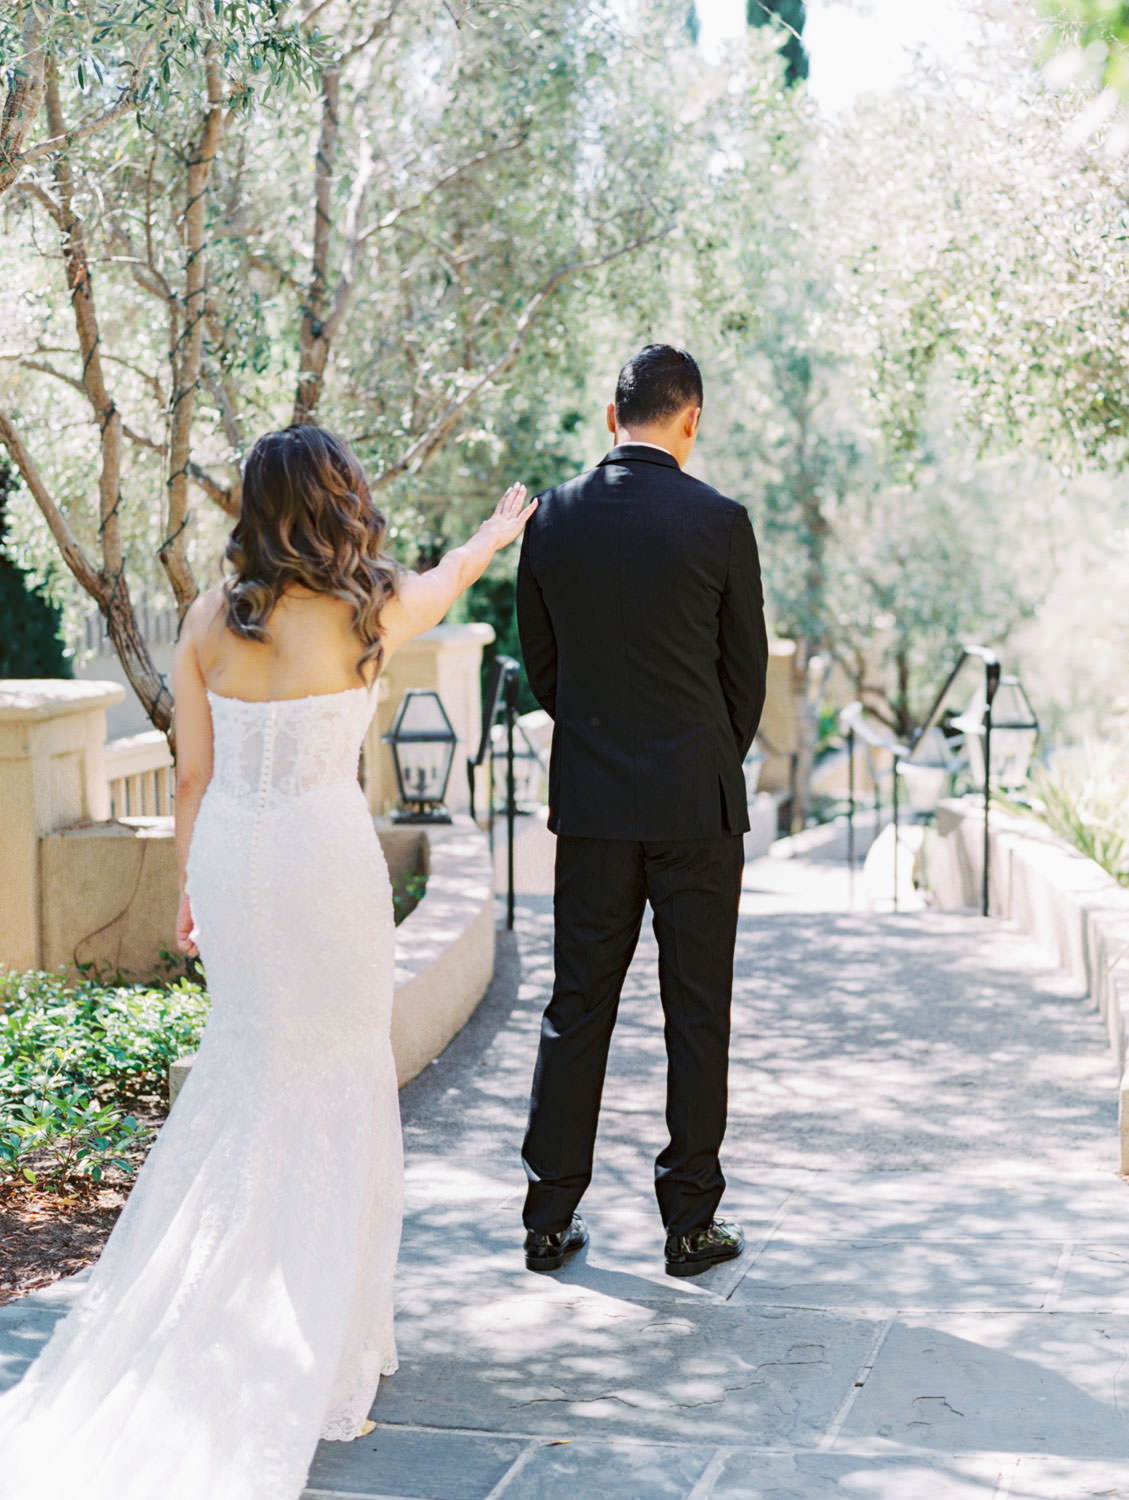 Bride and groom first look. Groom in a three piece black tuxedo and bride in a Martina Liana gown. Wedding at Rancho Bernardo Inn. Film photo by Cavin Elizabeth Photography